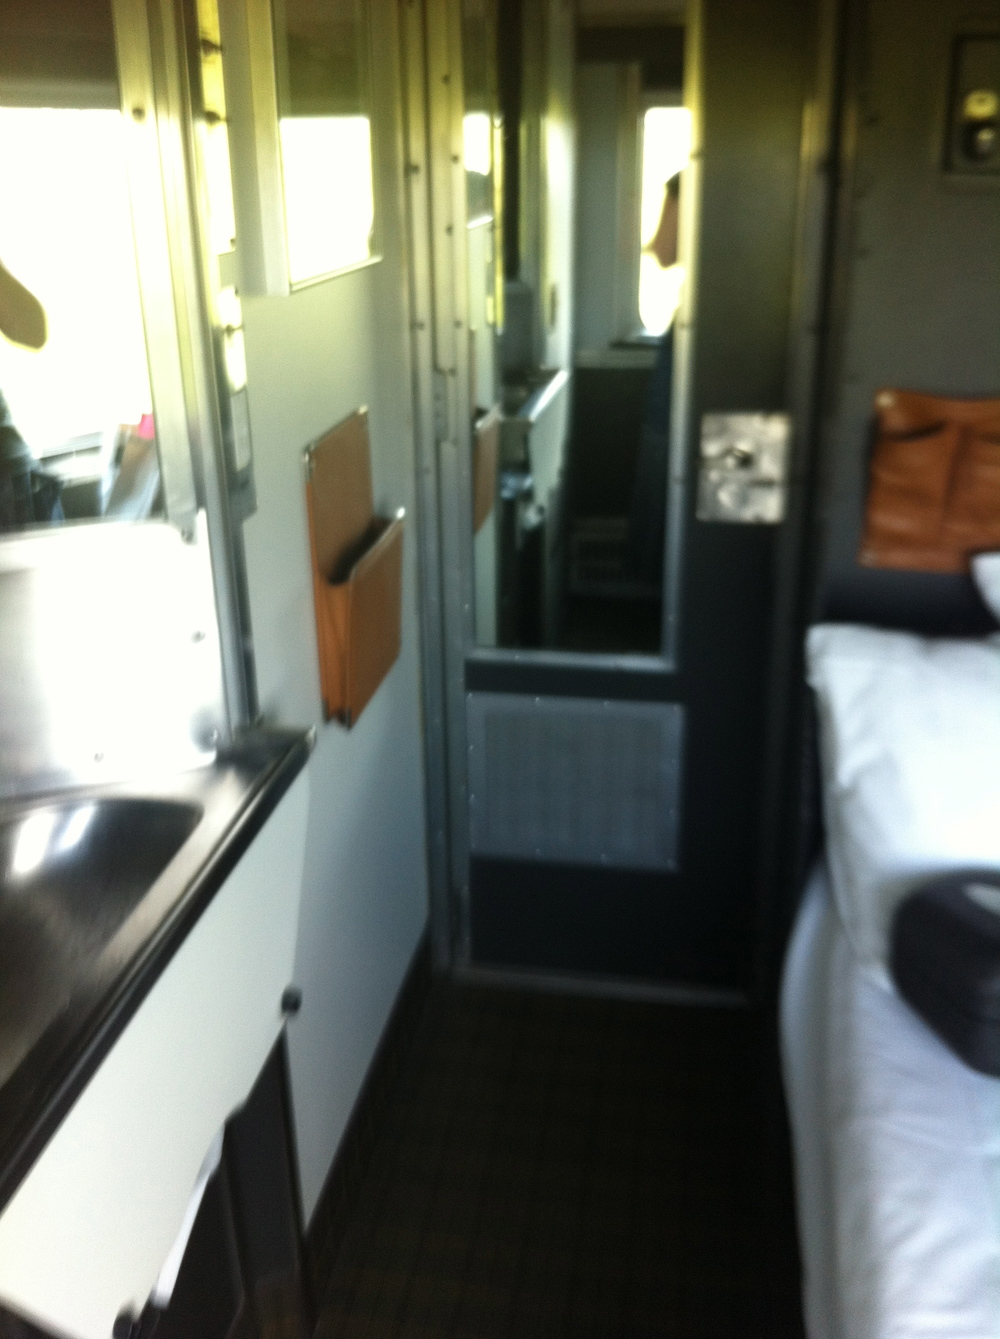 My cabin on the train, as seen from the window side.